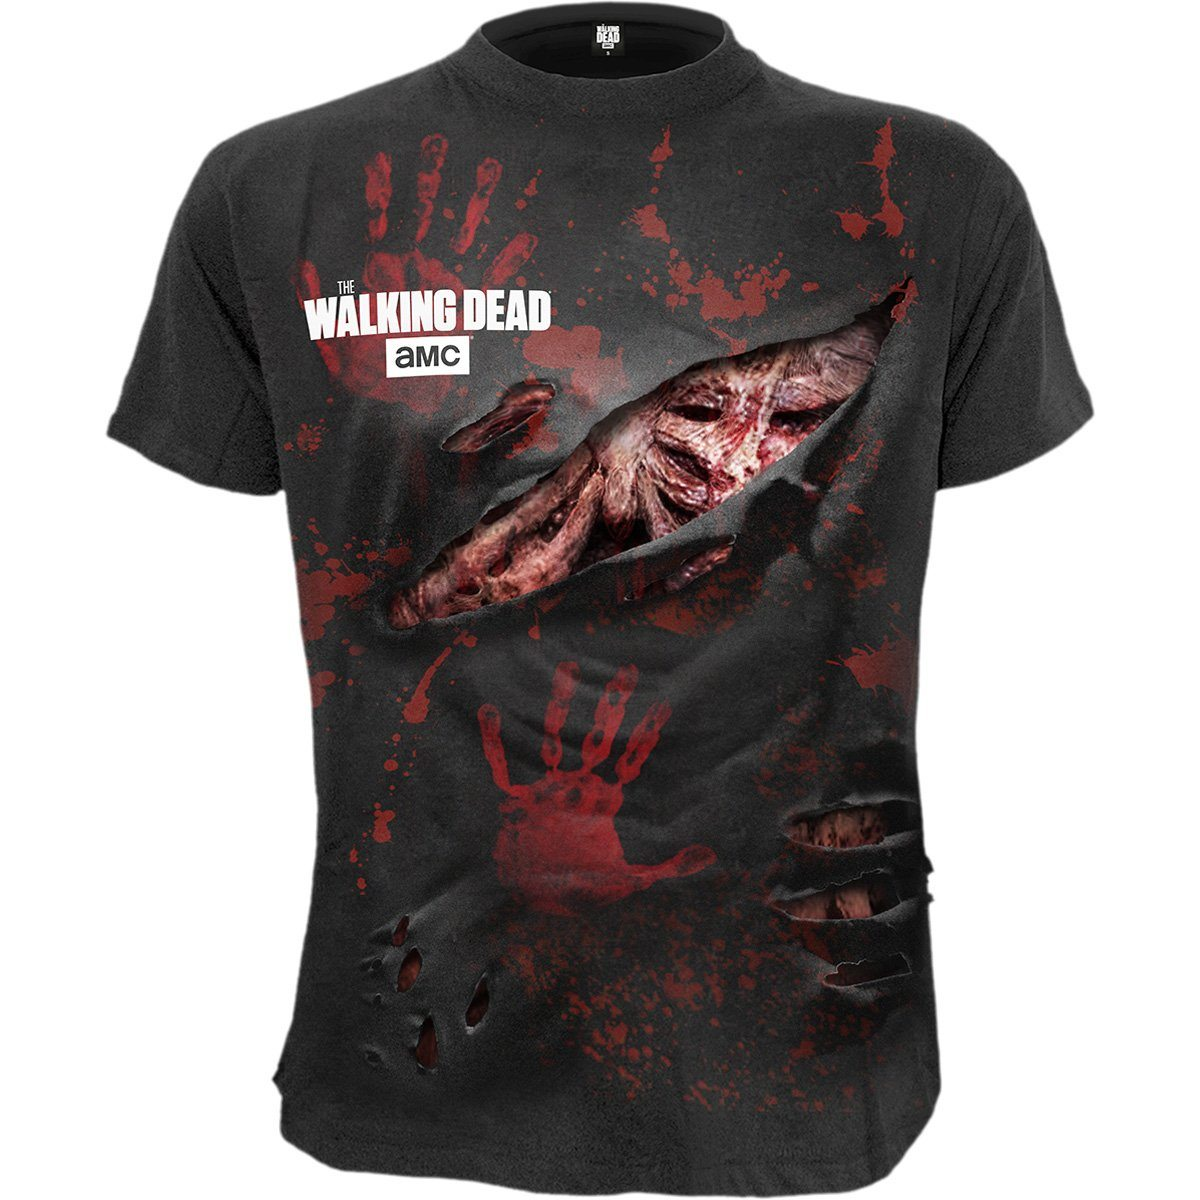 The Walking Dead All Infected Men's Black T-Shirt